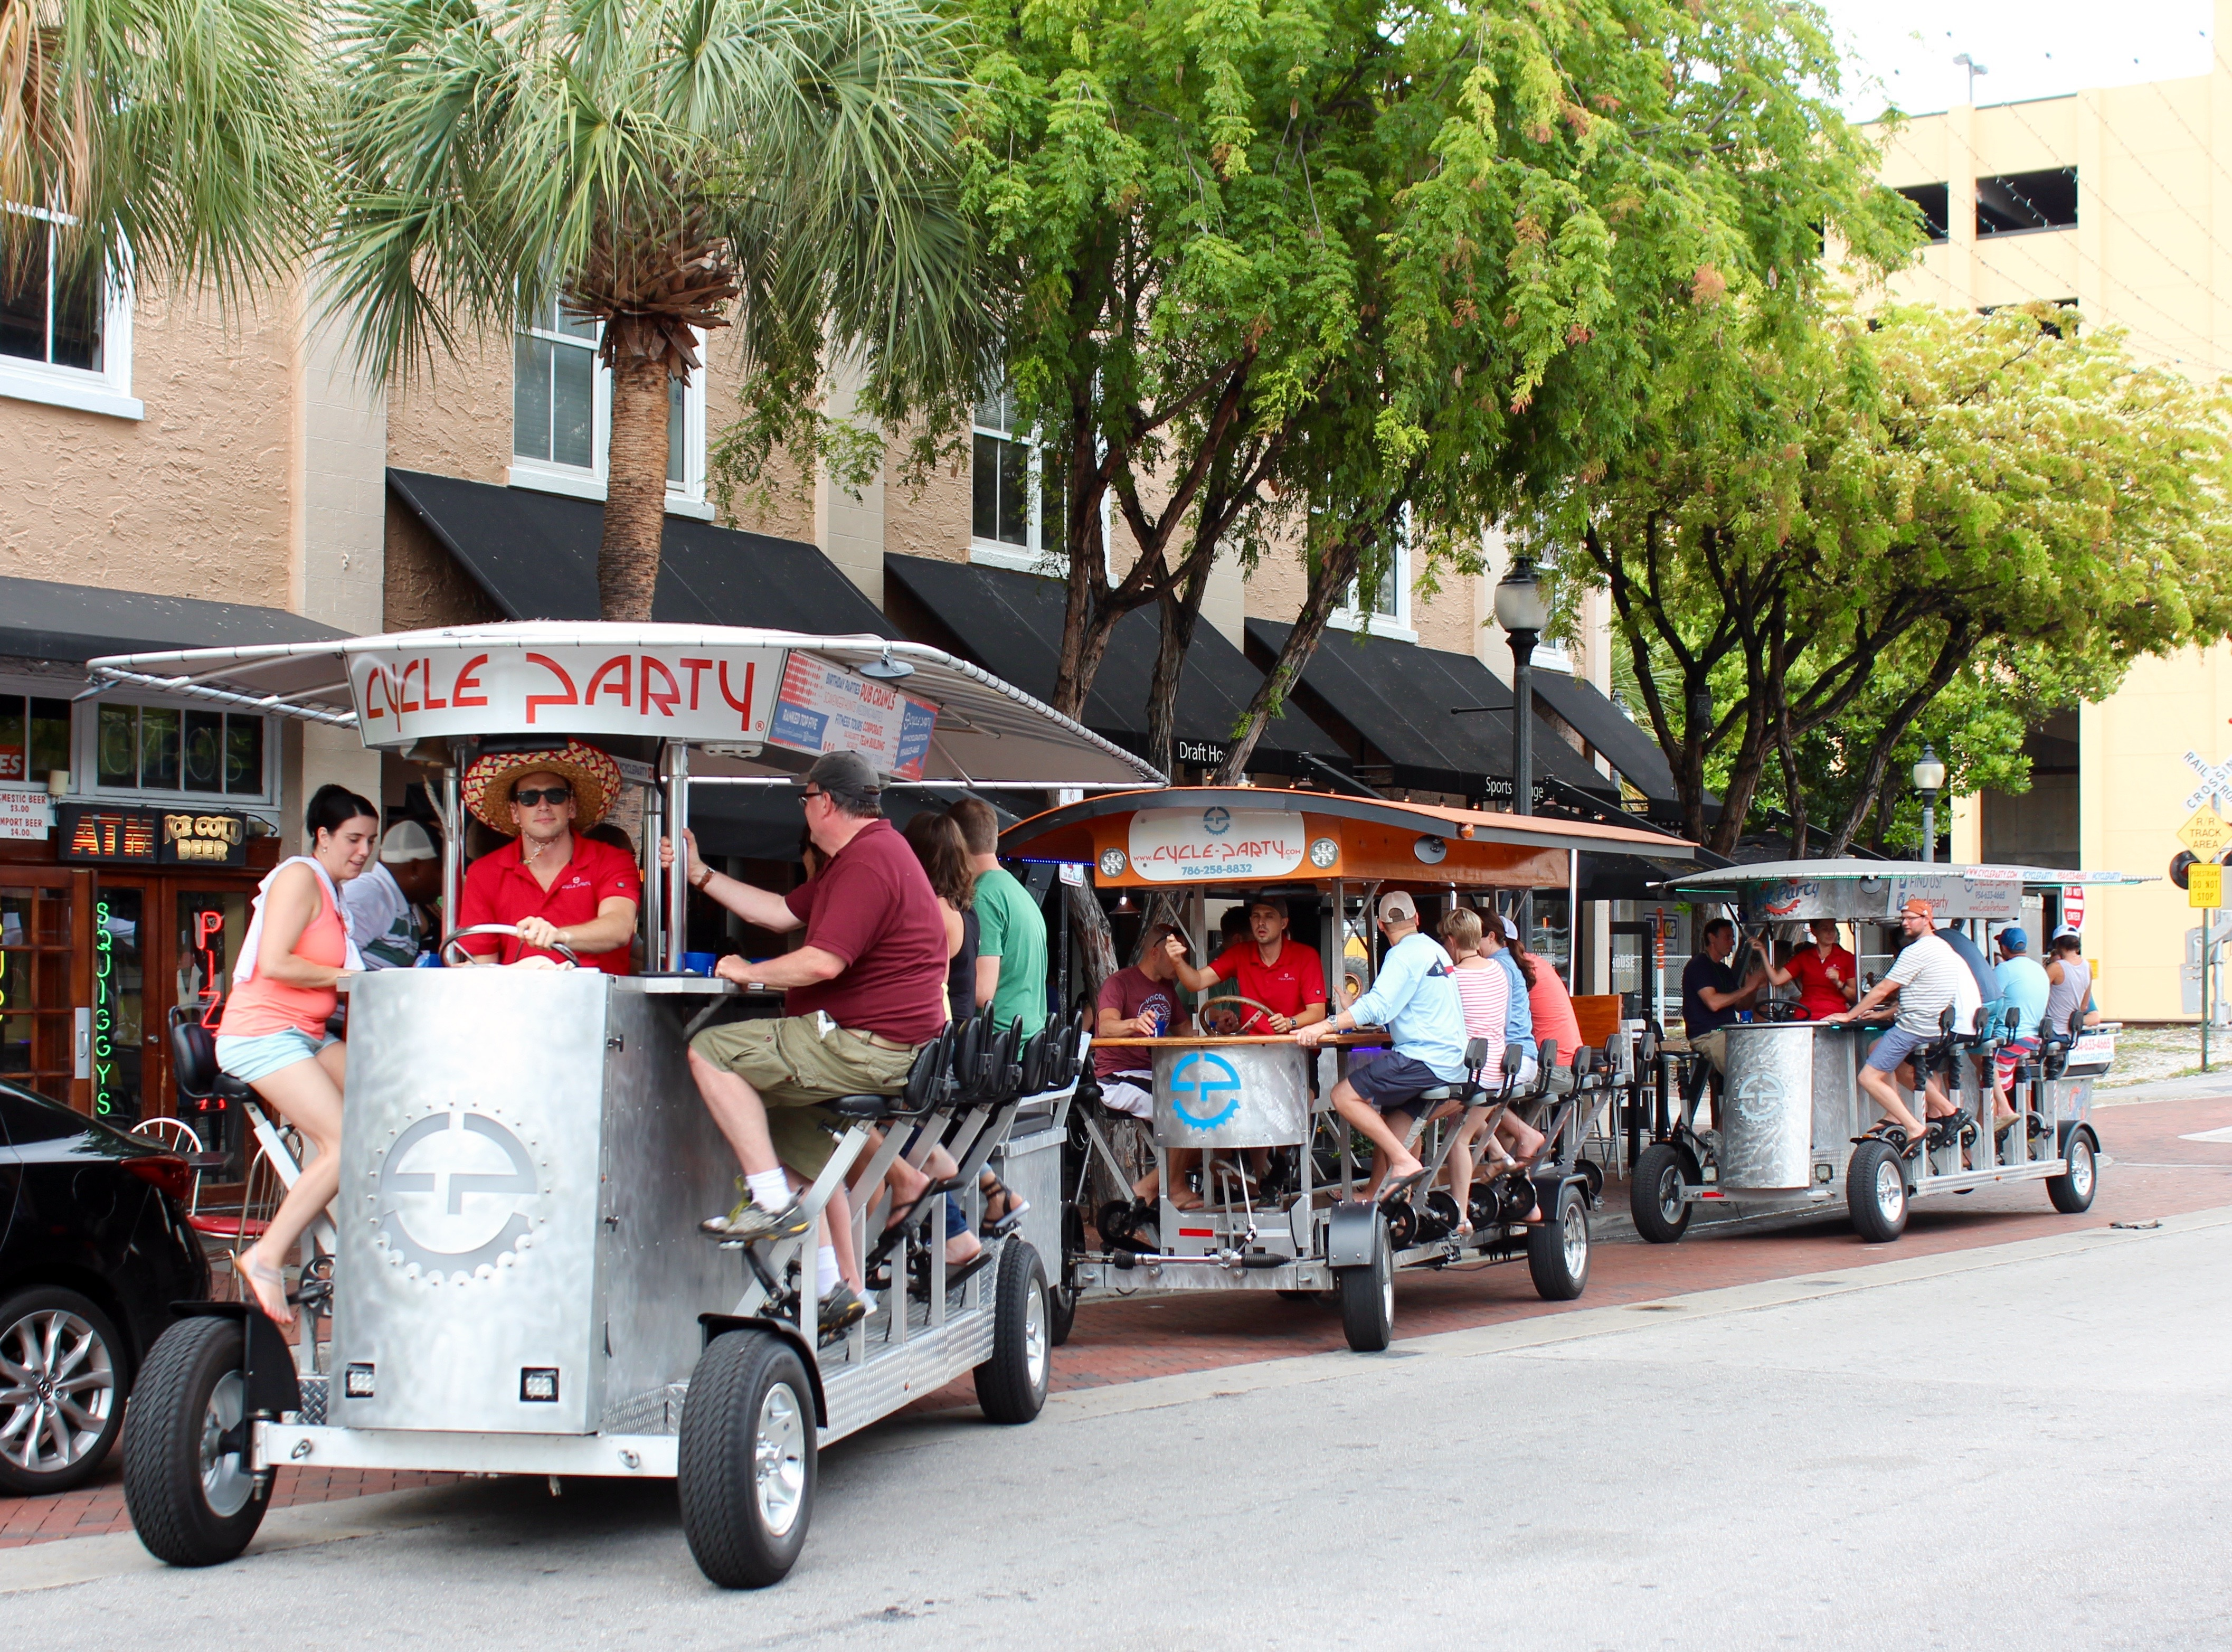 Cycle Party Launches in Miami